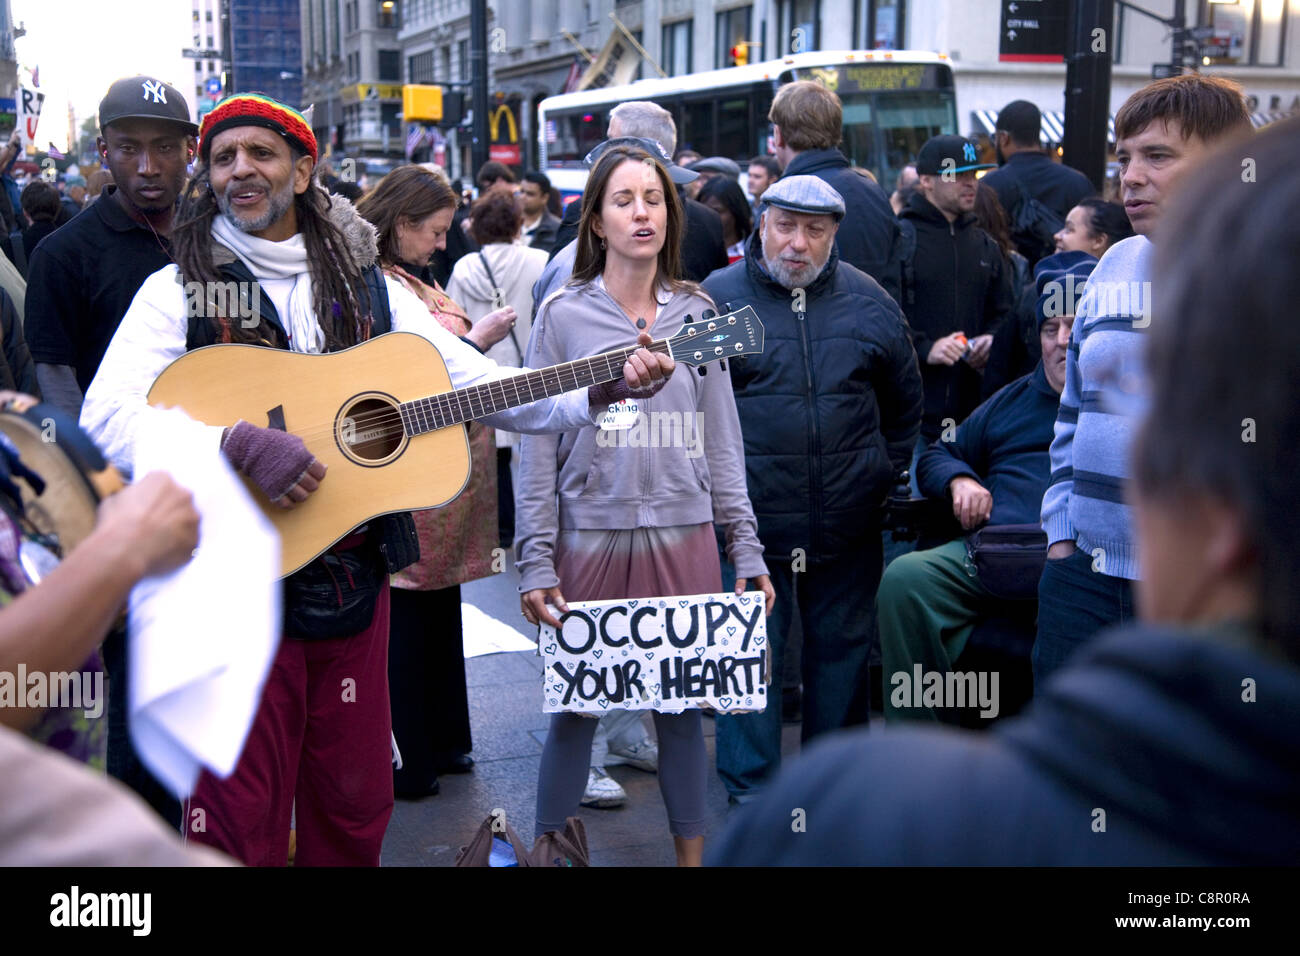 Group sings at Occupy Wall St. at Liberty Square in NYC. - Stock Image